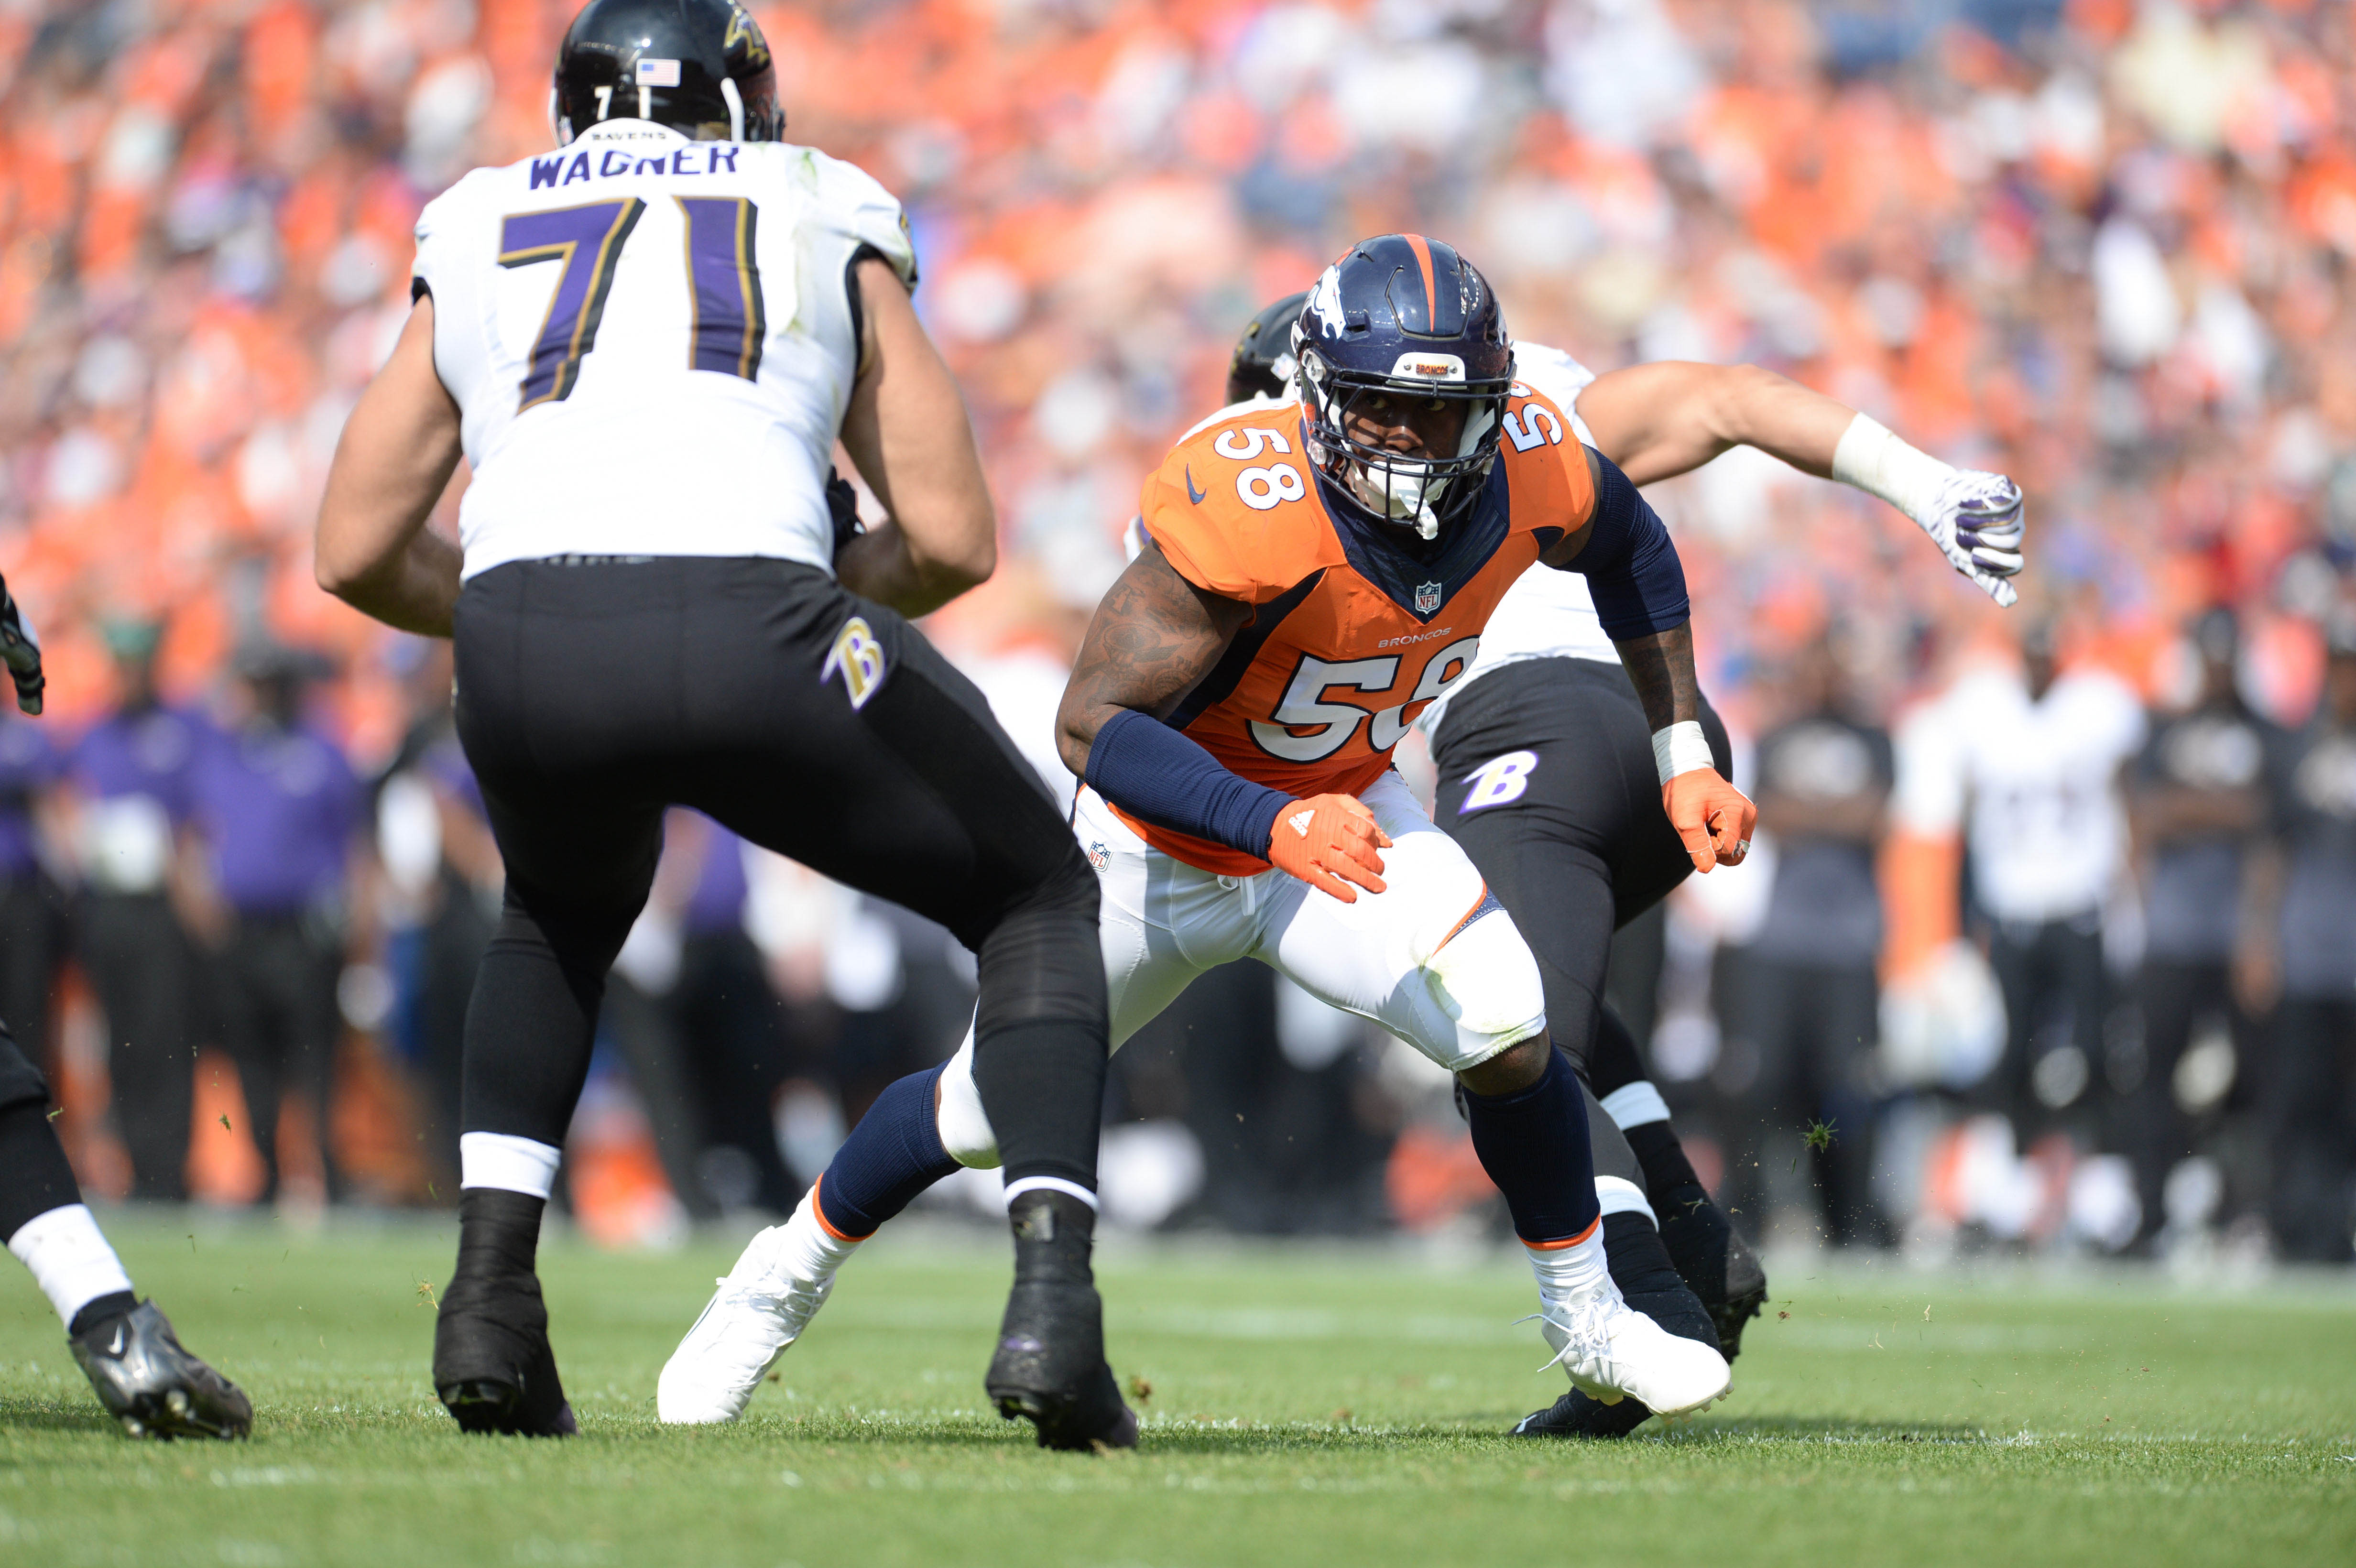 8817753-nfl-baltimore-ravens-at-denver-broncos-1